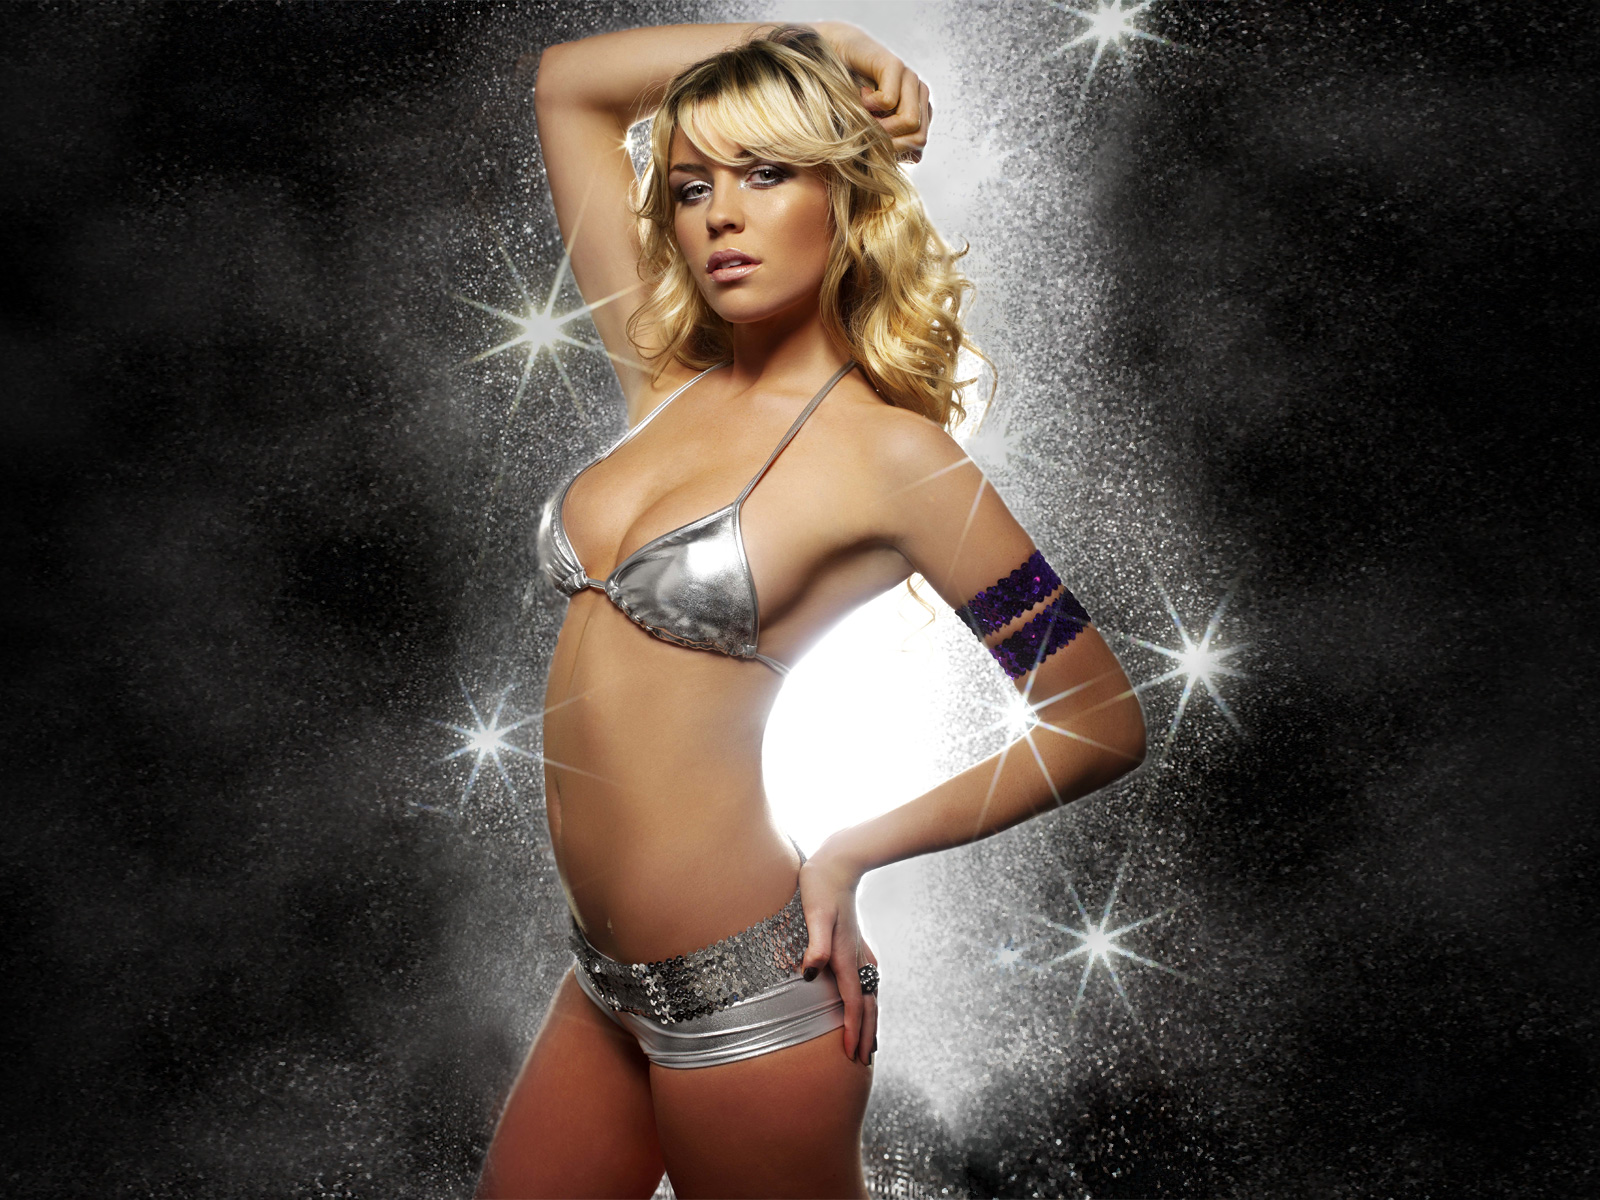 Silver Bikini With Silver Belt And Buckle Blue Arm Band Sparkling Lights